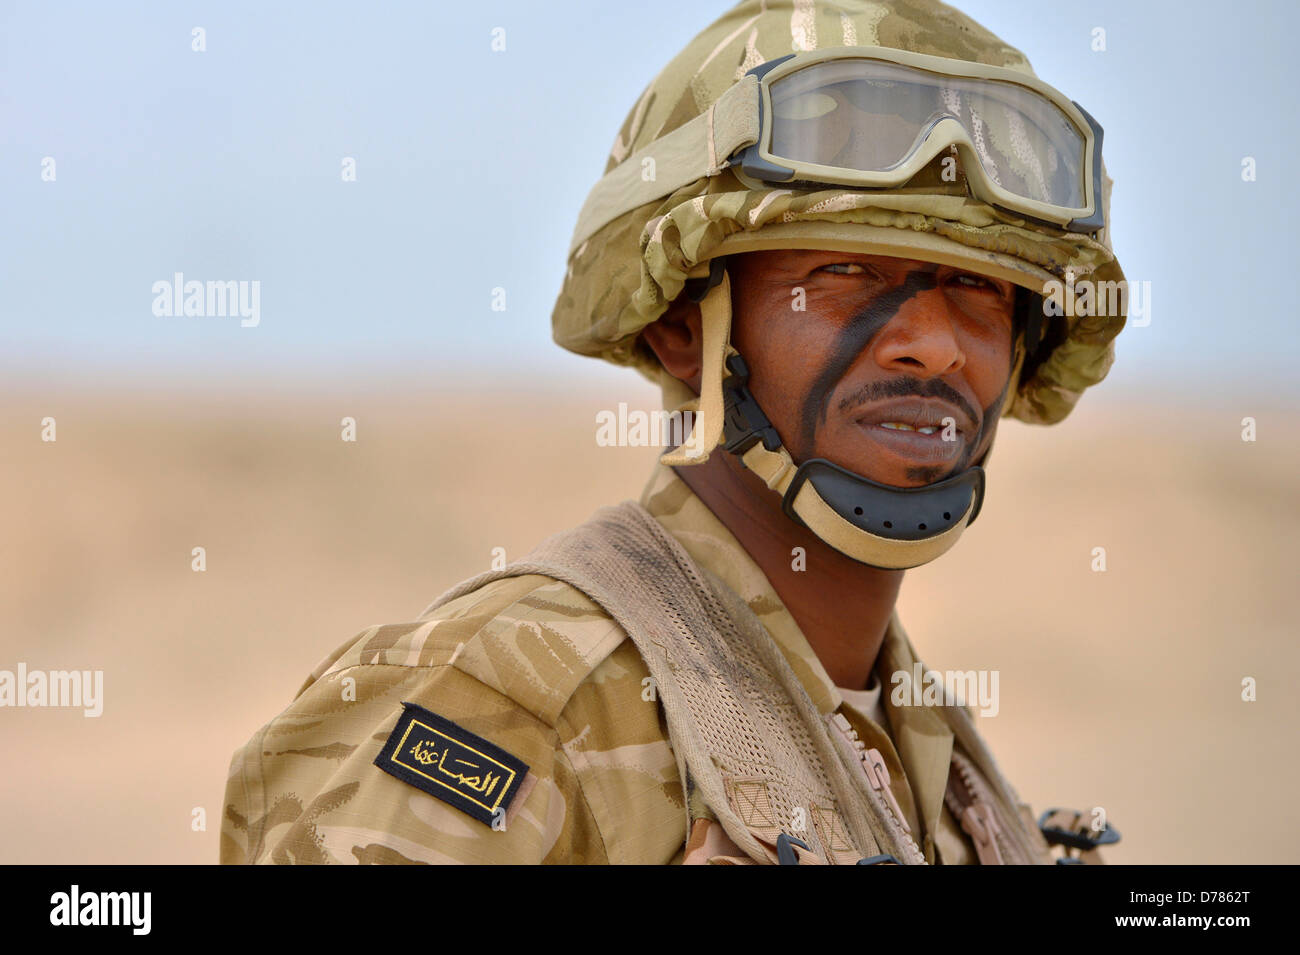 A Qatar Armed Forces soldier during a joint counter-terrorism exercise with US Forces April 28, 2013 in Zikrit, - Stock Image